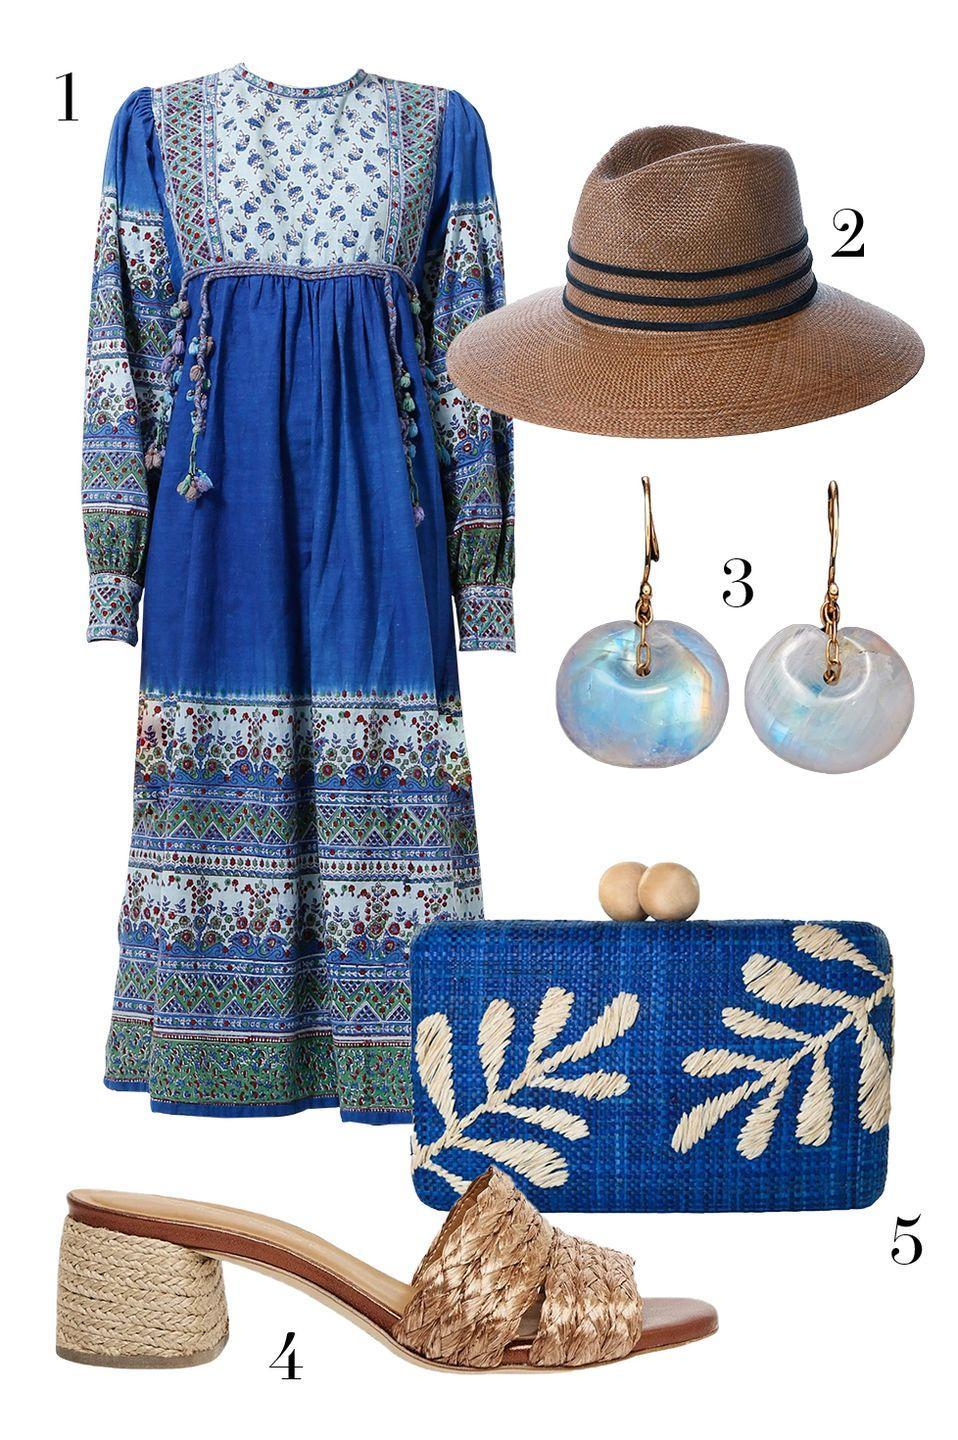 "<p>Vintage dresses are an easy way to instantly pull an ensemble together. Here, raffia accessories and a hat play up the ""I just found this at the market"" vibes. </p><ol><li><a href=""https://go.skimresources.com?id=74968X1525087&xs=1&url=https%3A%2F%2Fwww.resee.com%2Fclothes%2Fgraphic-tunic-with-tassels.html"" rel=""nofollow noopener"" target=""_blank"" data-ylk=""slk:World Treasures via ReSee"" class=""link rapid-noclick-resp"">World Treasures via ReSee</a> 2. <a href=""https://go.skimresources.com?id=74968X1525087&xs=1&url=https%3A%2F%2Fjanessaleone.com%2Fcollections%2Fall%2Fproducts%2Fjia"" rel=""nofollow noopener"" target=""_blank"" data-ylk=""slk:Janessa Leone"" class=""link rapid-noclick-resp"">Janessa Leone</a> 3. <a href=""https://go.skimresources.com?id=74968X1525087&xs=1&url=https%3A%2F%2Fwww.tenthousandthingsnyc.com%2Fcollections%2Fearrings%2Fproducts%2Ftapiz-bead-earring%3Fvariant%3D31066987102289"" rel=""nofollow noopener"" target=""_blank"" data-ylk=""slk:Ten Thousand Things"" class=""link rapid-noclick-resp"">Ten Thousand Things</a> 4. <a href=""https://go.skimresources.com?id=74968X1525087&xs=1&url=https%3A%2F%2Fandreassous.com%2Fproducts%2Fandre-cadyn-copper"" rel=""nofollow noopener"" target=""_blank"" data-ylk=""slk:Andre Assous"" class=""link rapid-noclick-resp"">Andre Assous</a> 5. <a href=""https://go.skimresources.com?id=74968X1525087&xs=1&url=https%3A%2F%2Fmaison-de-mode.com%2Fproducts%2Fnoreen-blue"" rel=""nofollow noopener"" target=""_blank"" data-ylk=""slk:Kayu"" class=""link rapid-noclick-resp"">Kayu</a></li></ol>"